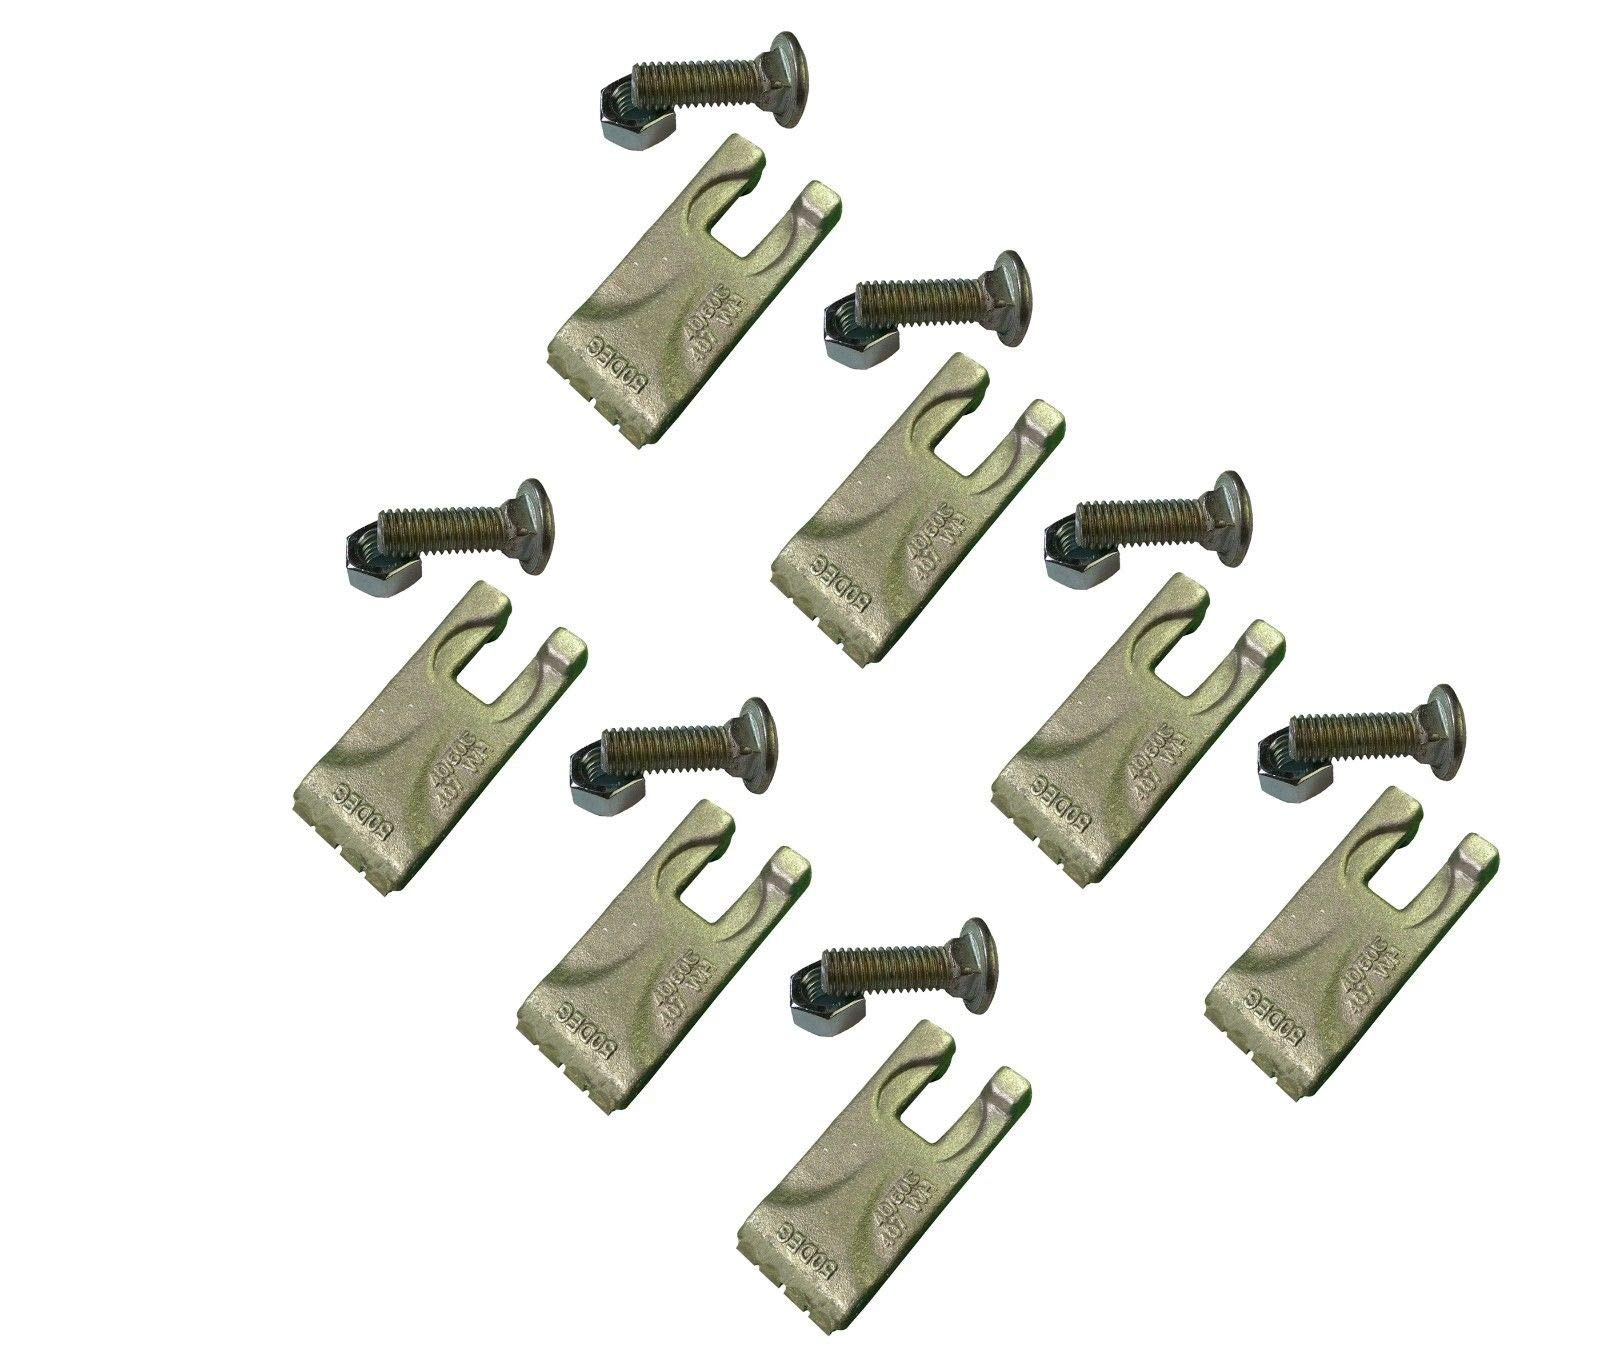 7 - Carbide Auger Teeth, 134519, 40/50 Size Tooth for Pengo Aggressor Auger by Digger Supply